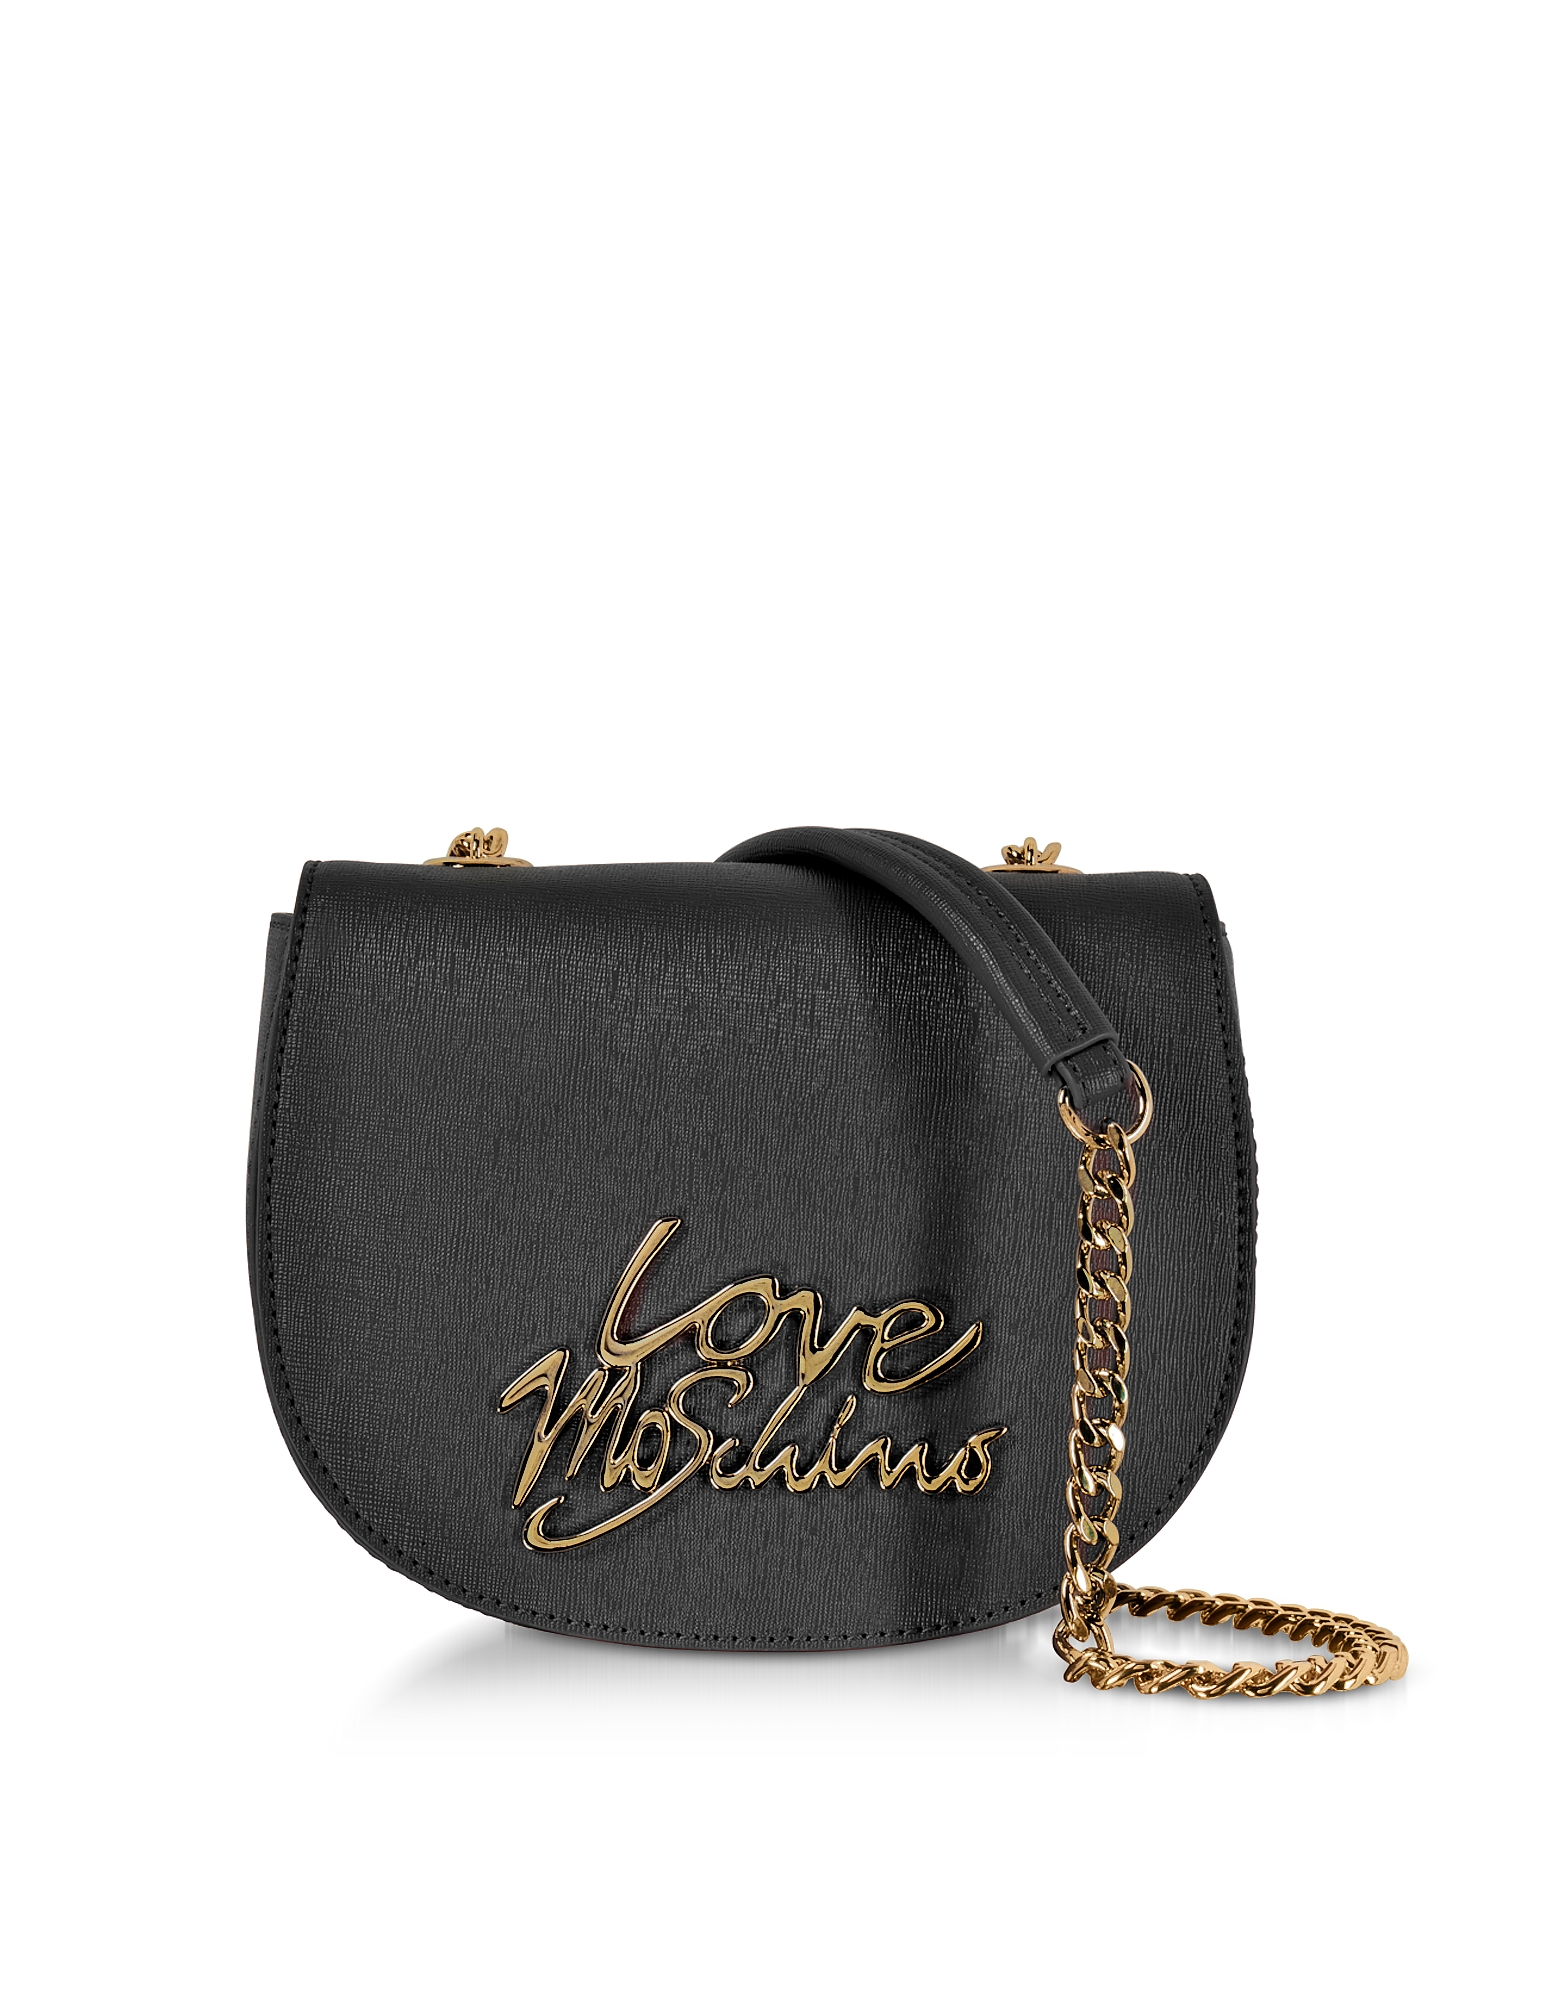 Love Moschino Handbags, Black Saffiano Eco-Leather Crossbody Bag w/Foulard